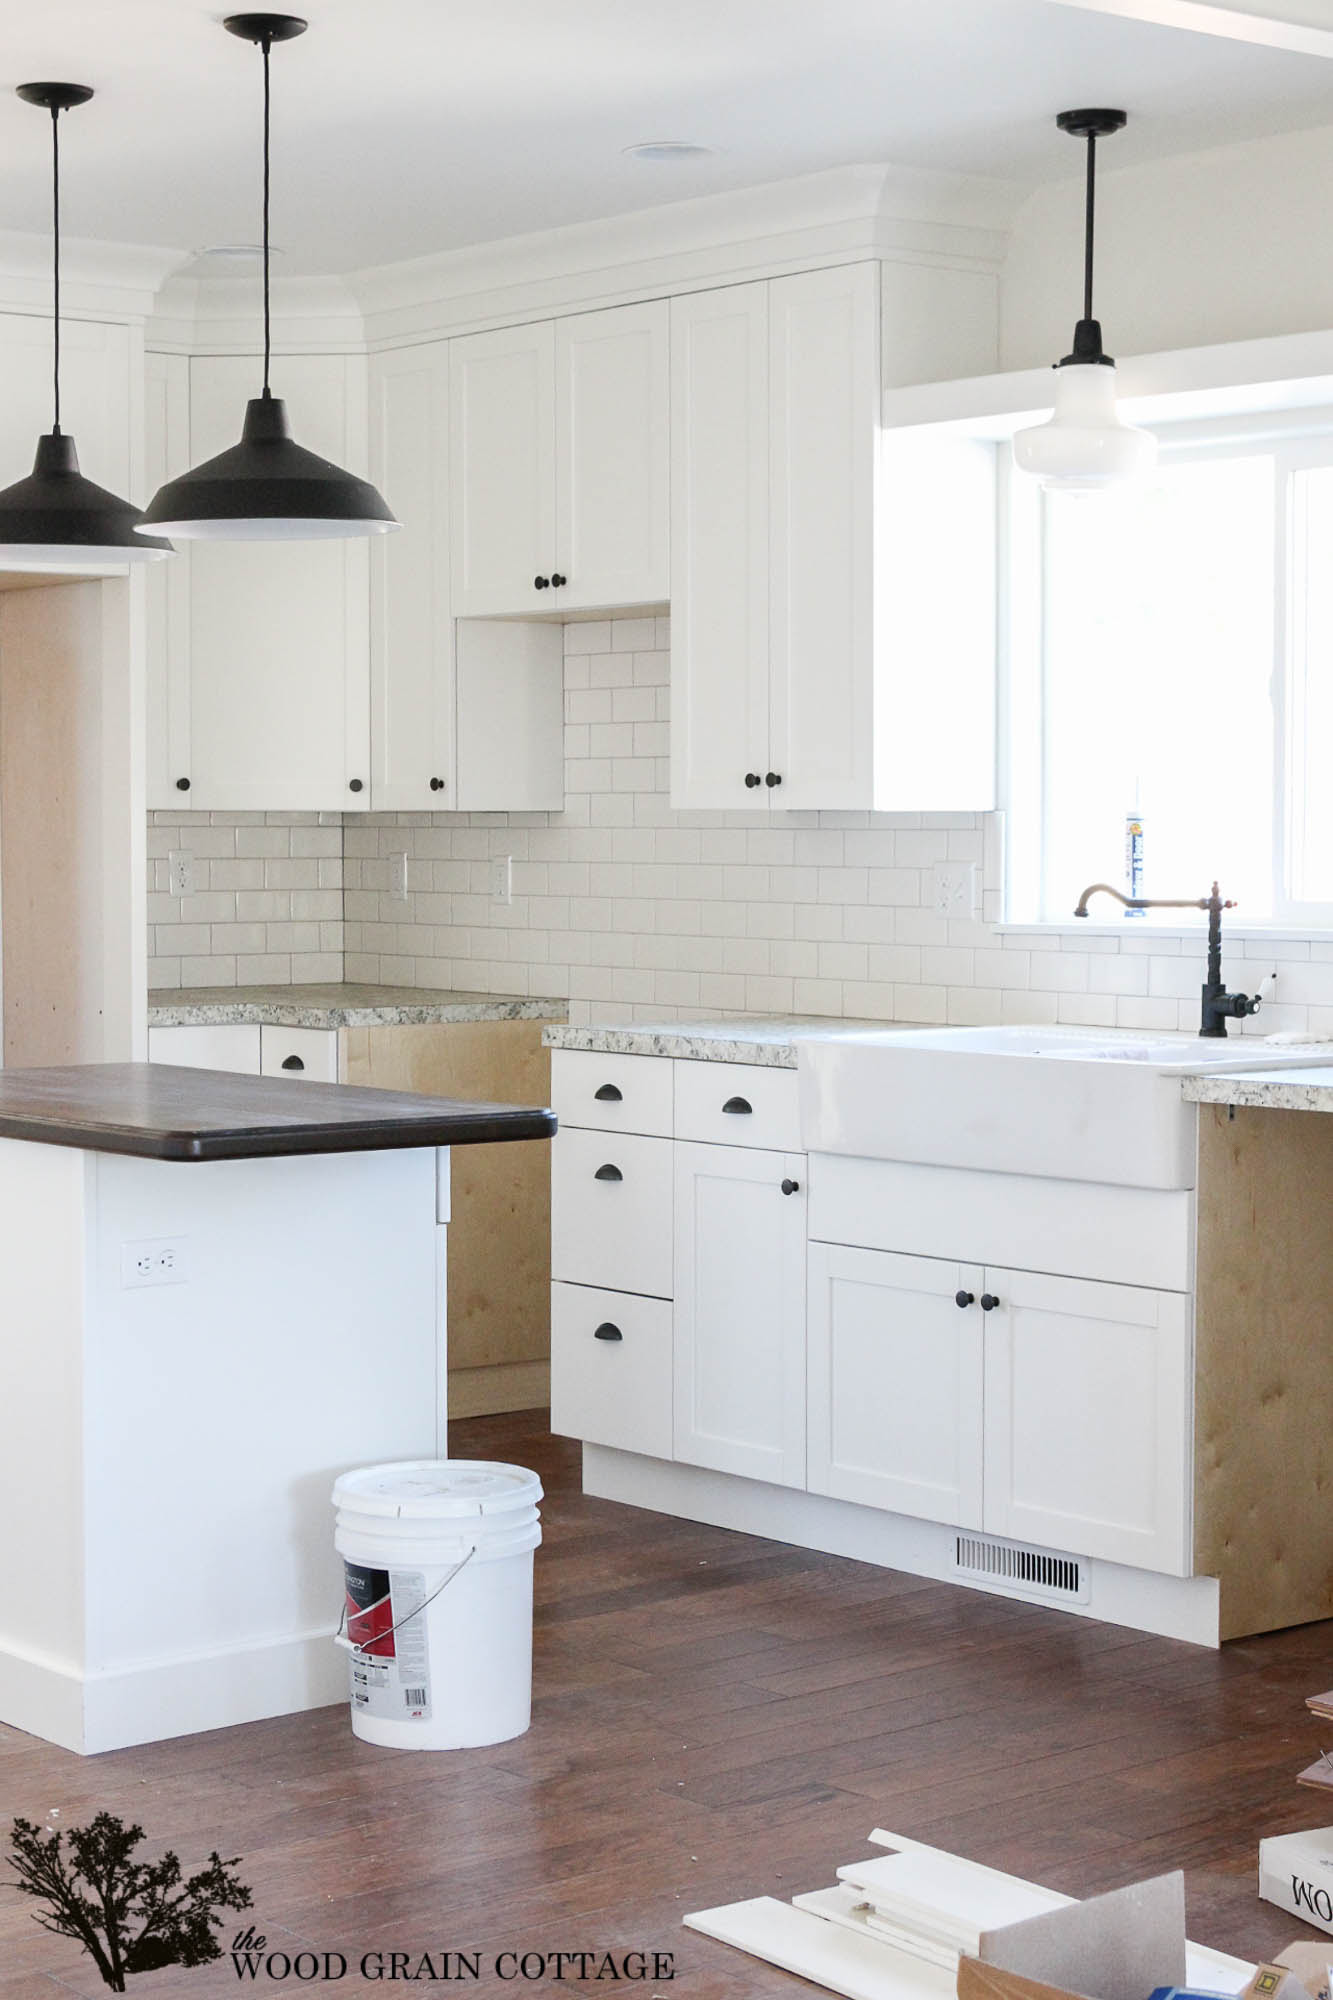 Fixer Upper Update Cabinet Knobs by The Wood Grain Cottage 21